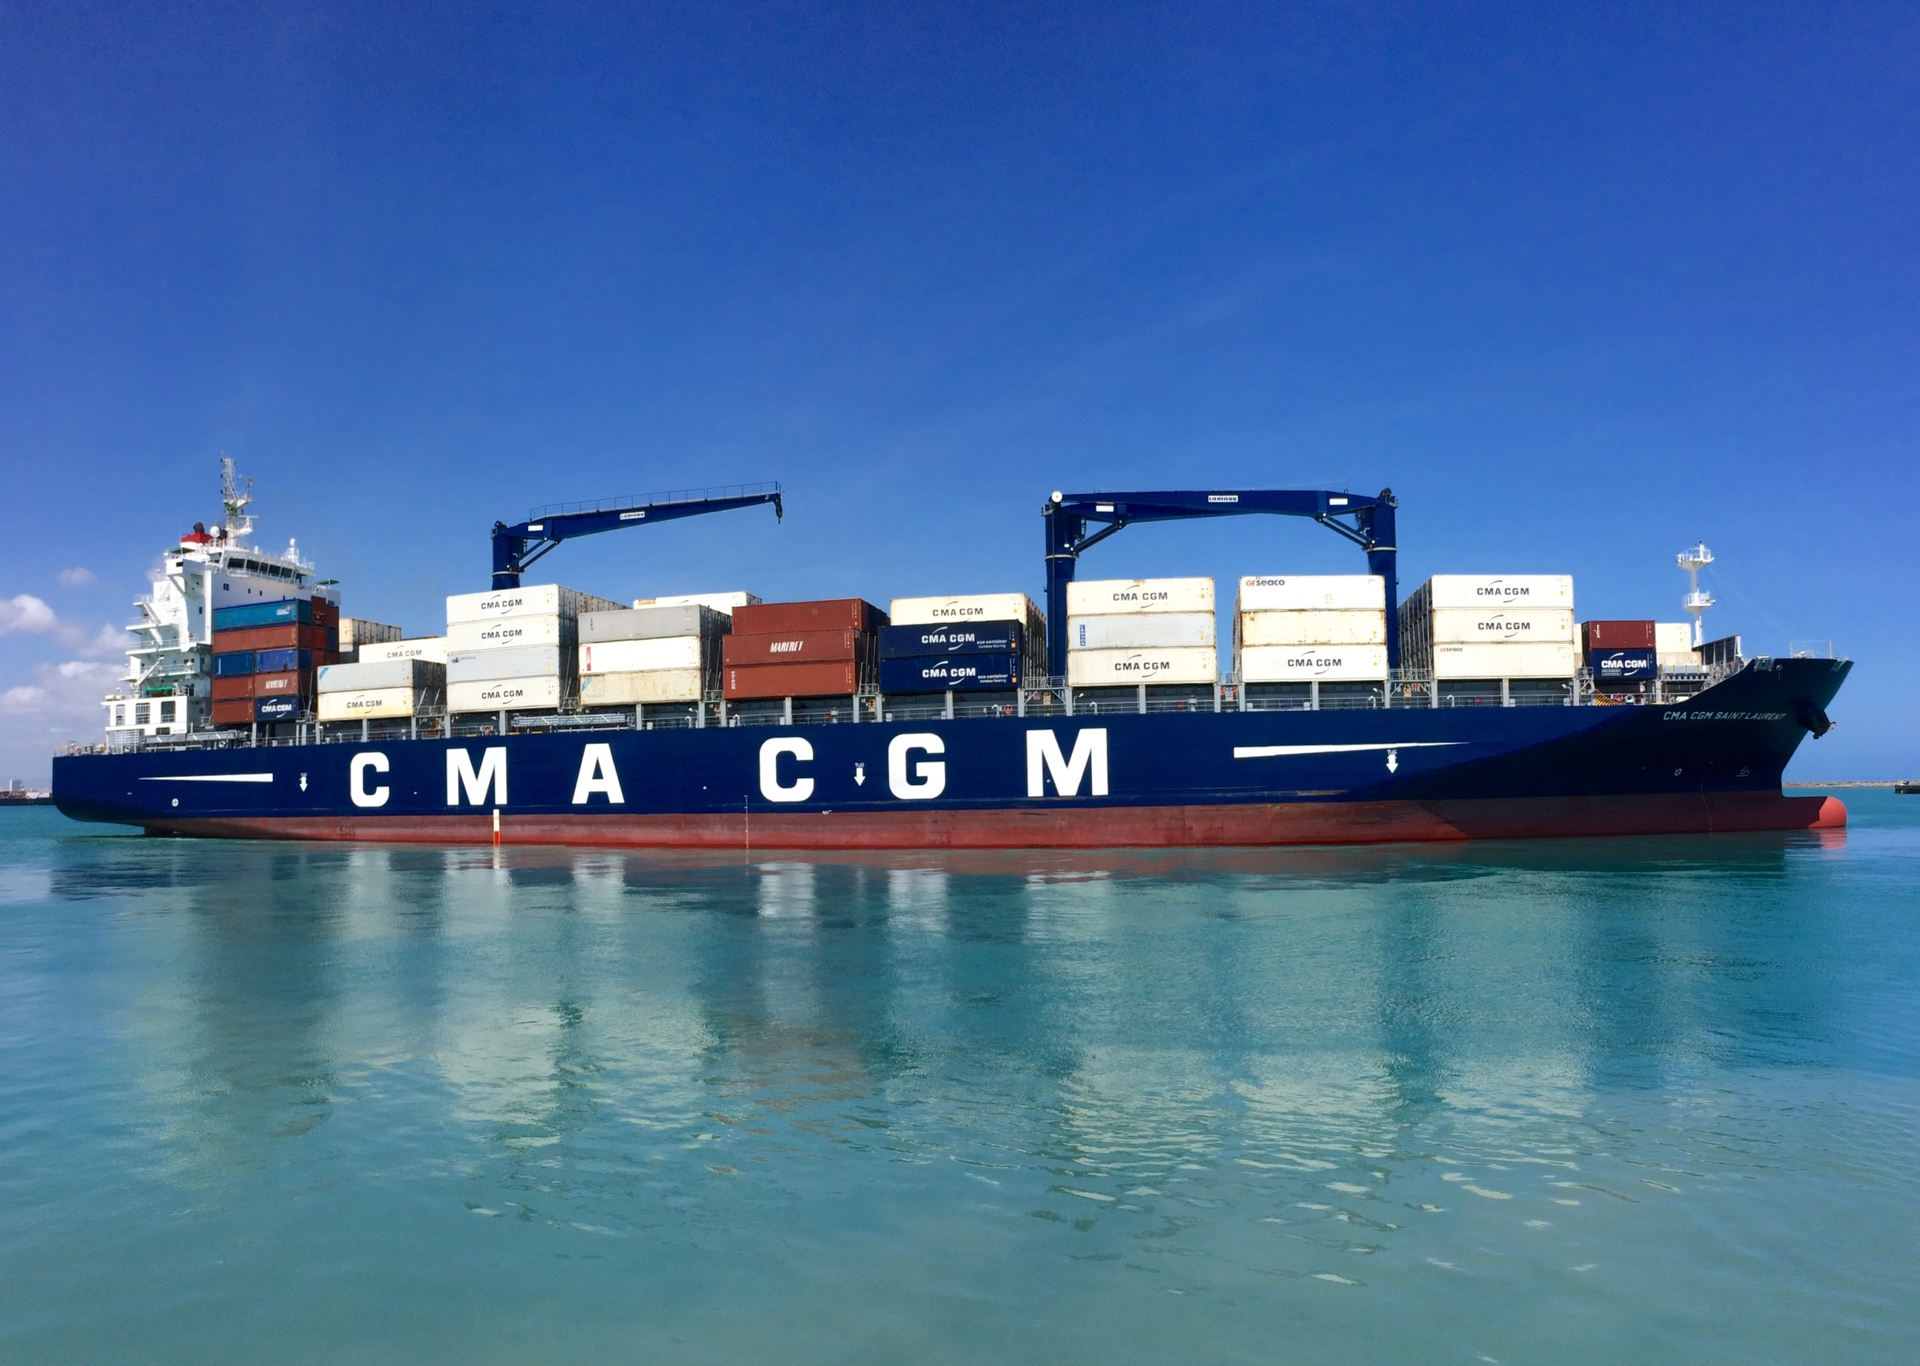 SeaMar Group awarded contract by CMA CGM Group for agency services